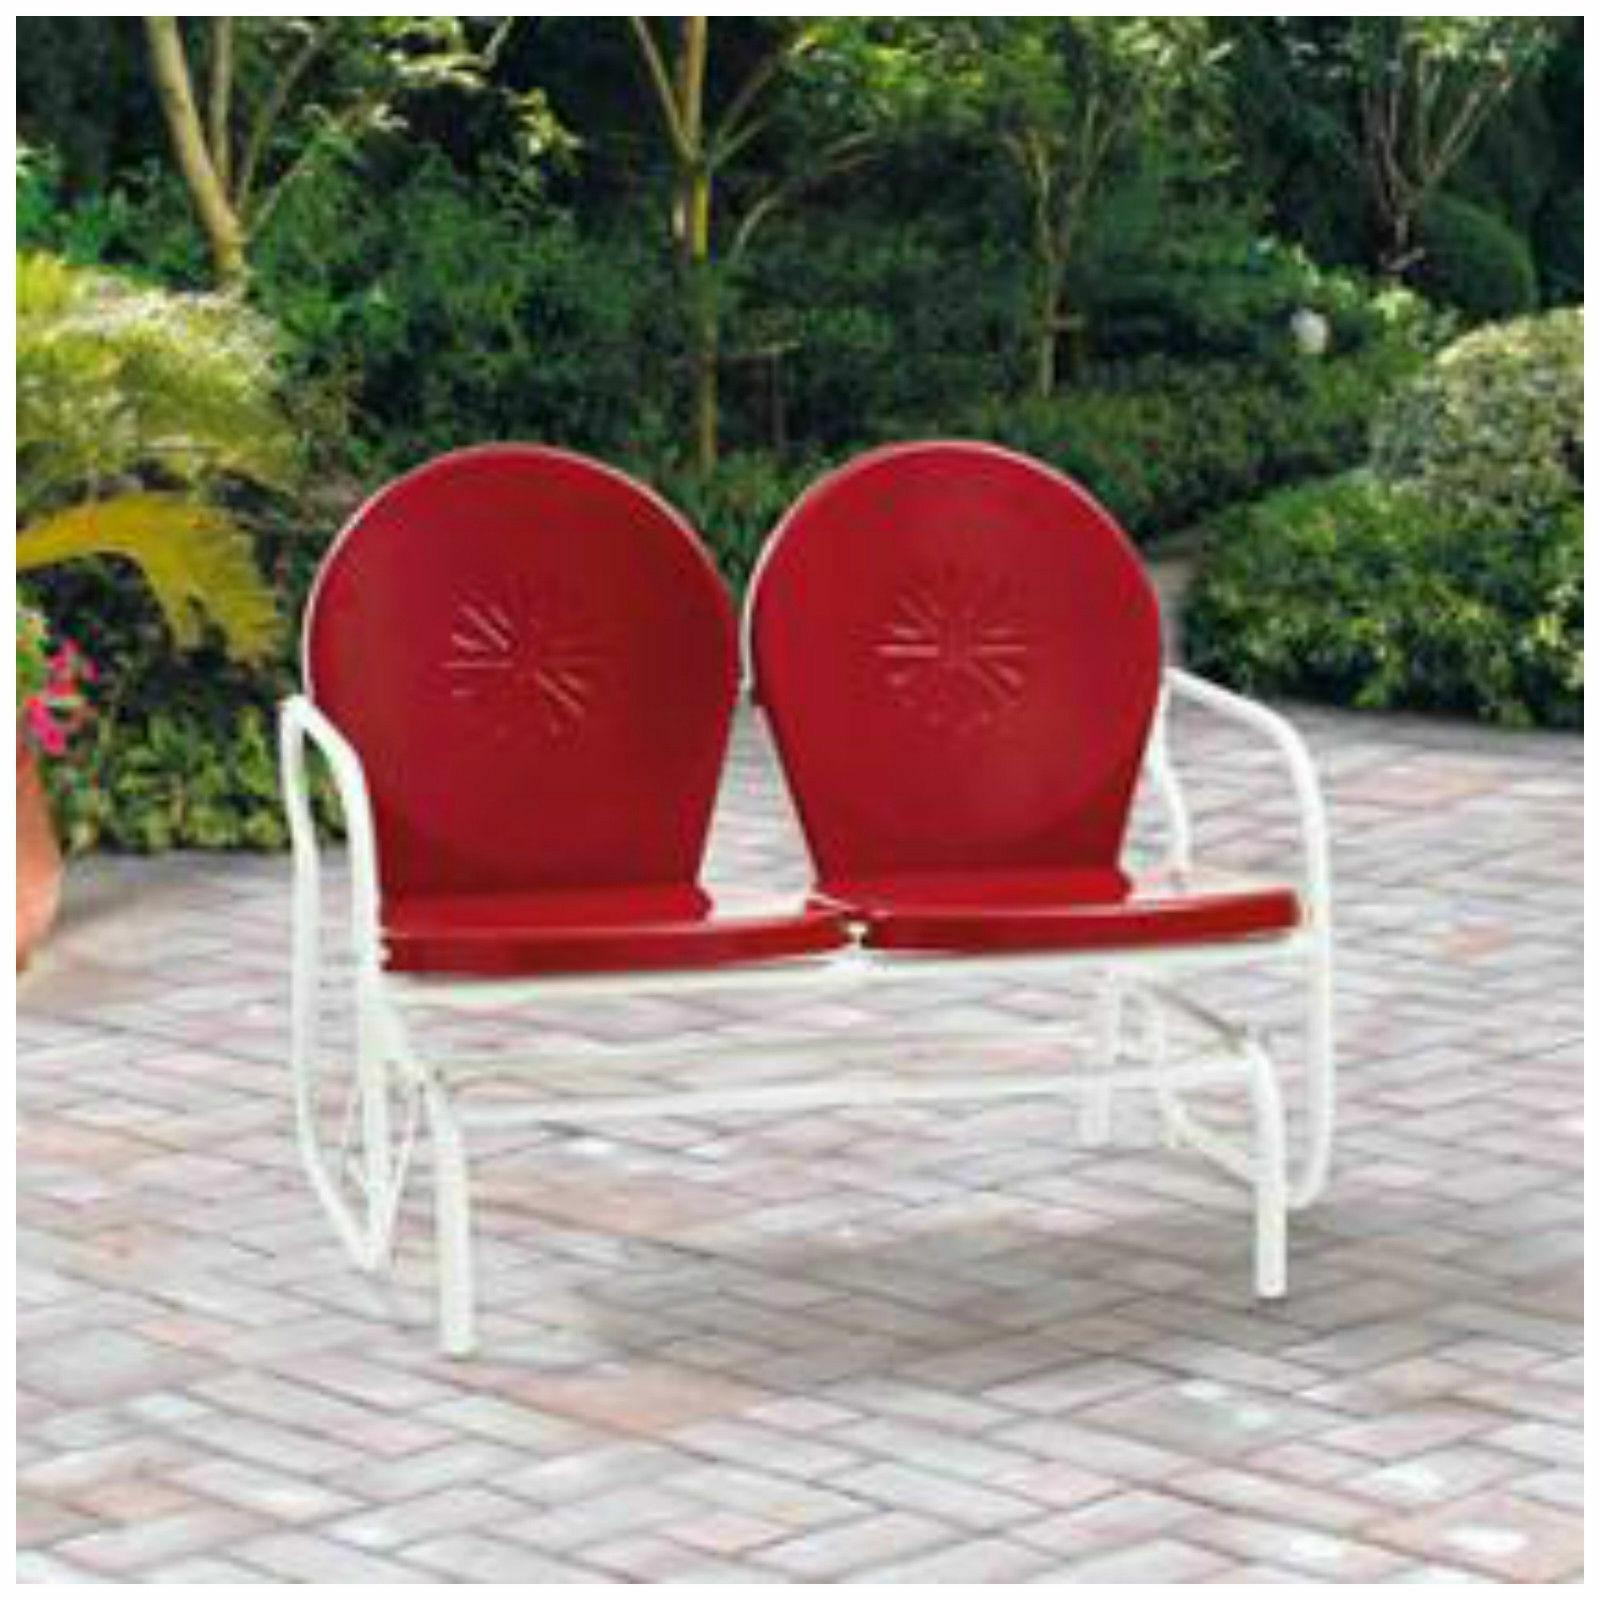 Outdoor Swing Seat Patio Garden Porch Chair